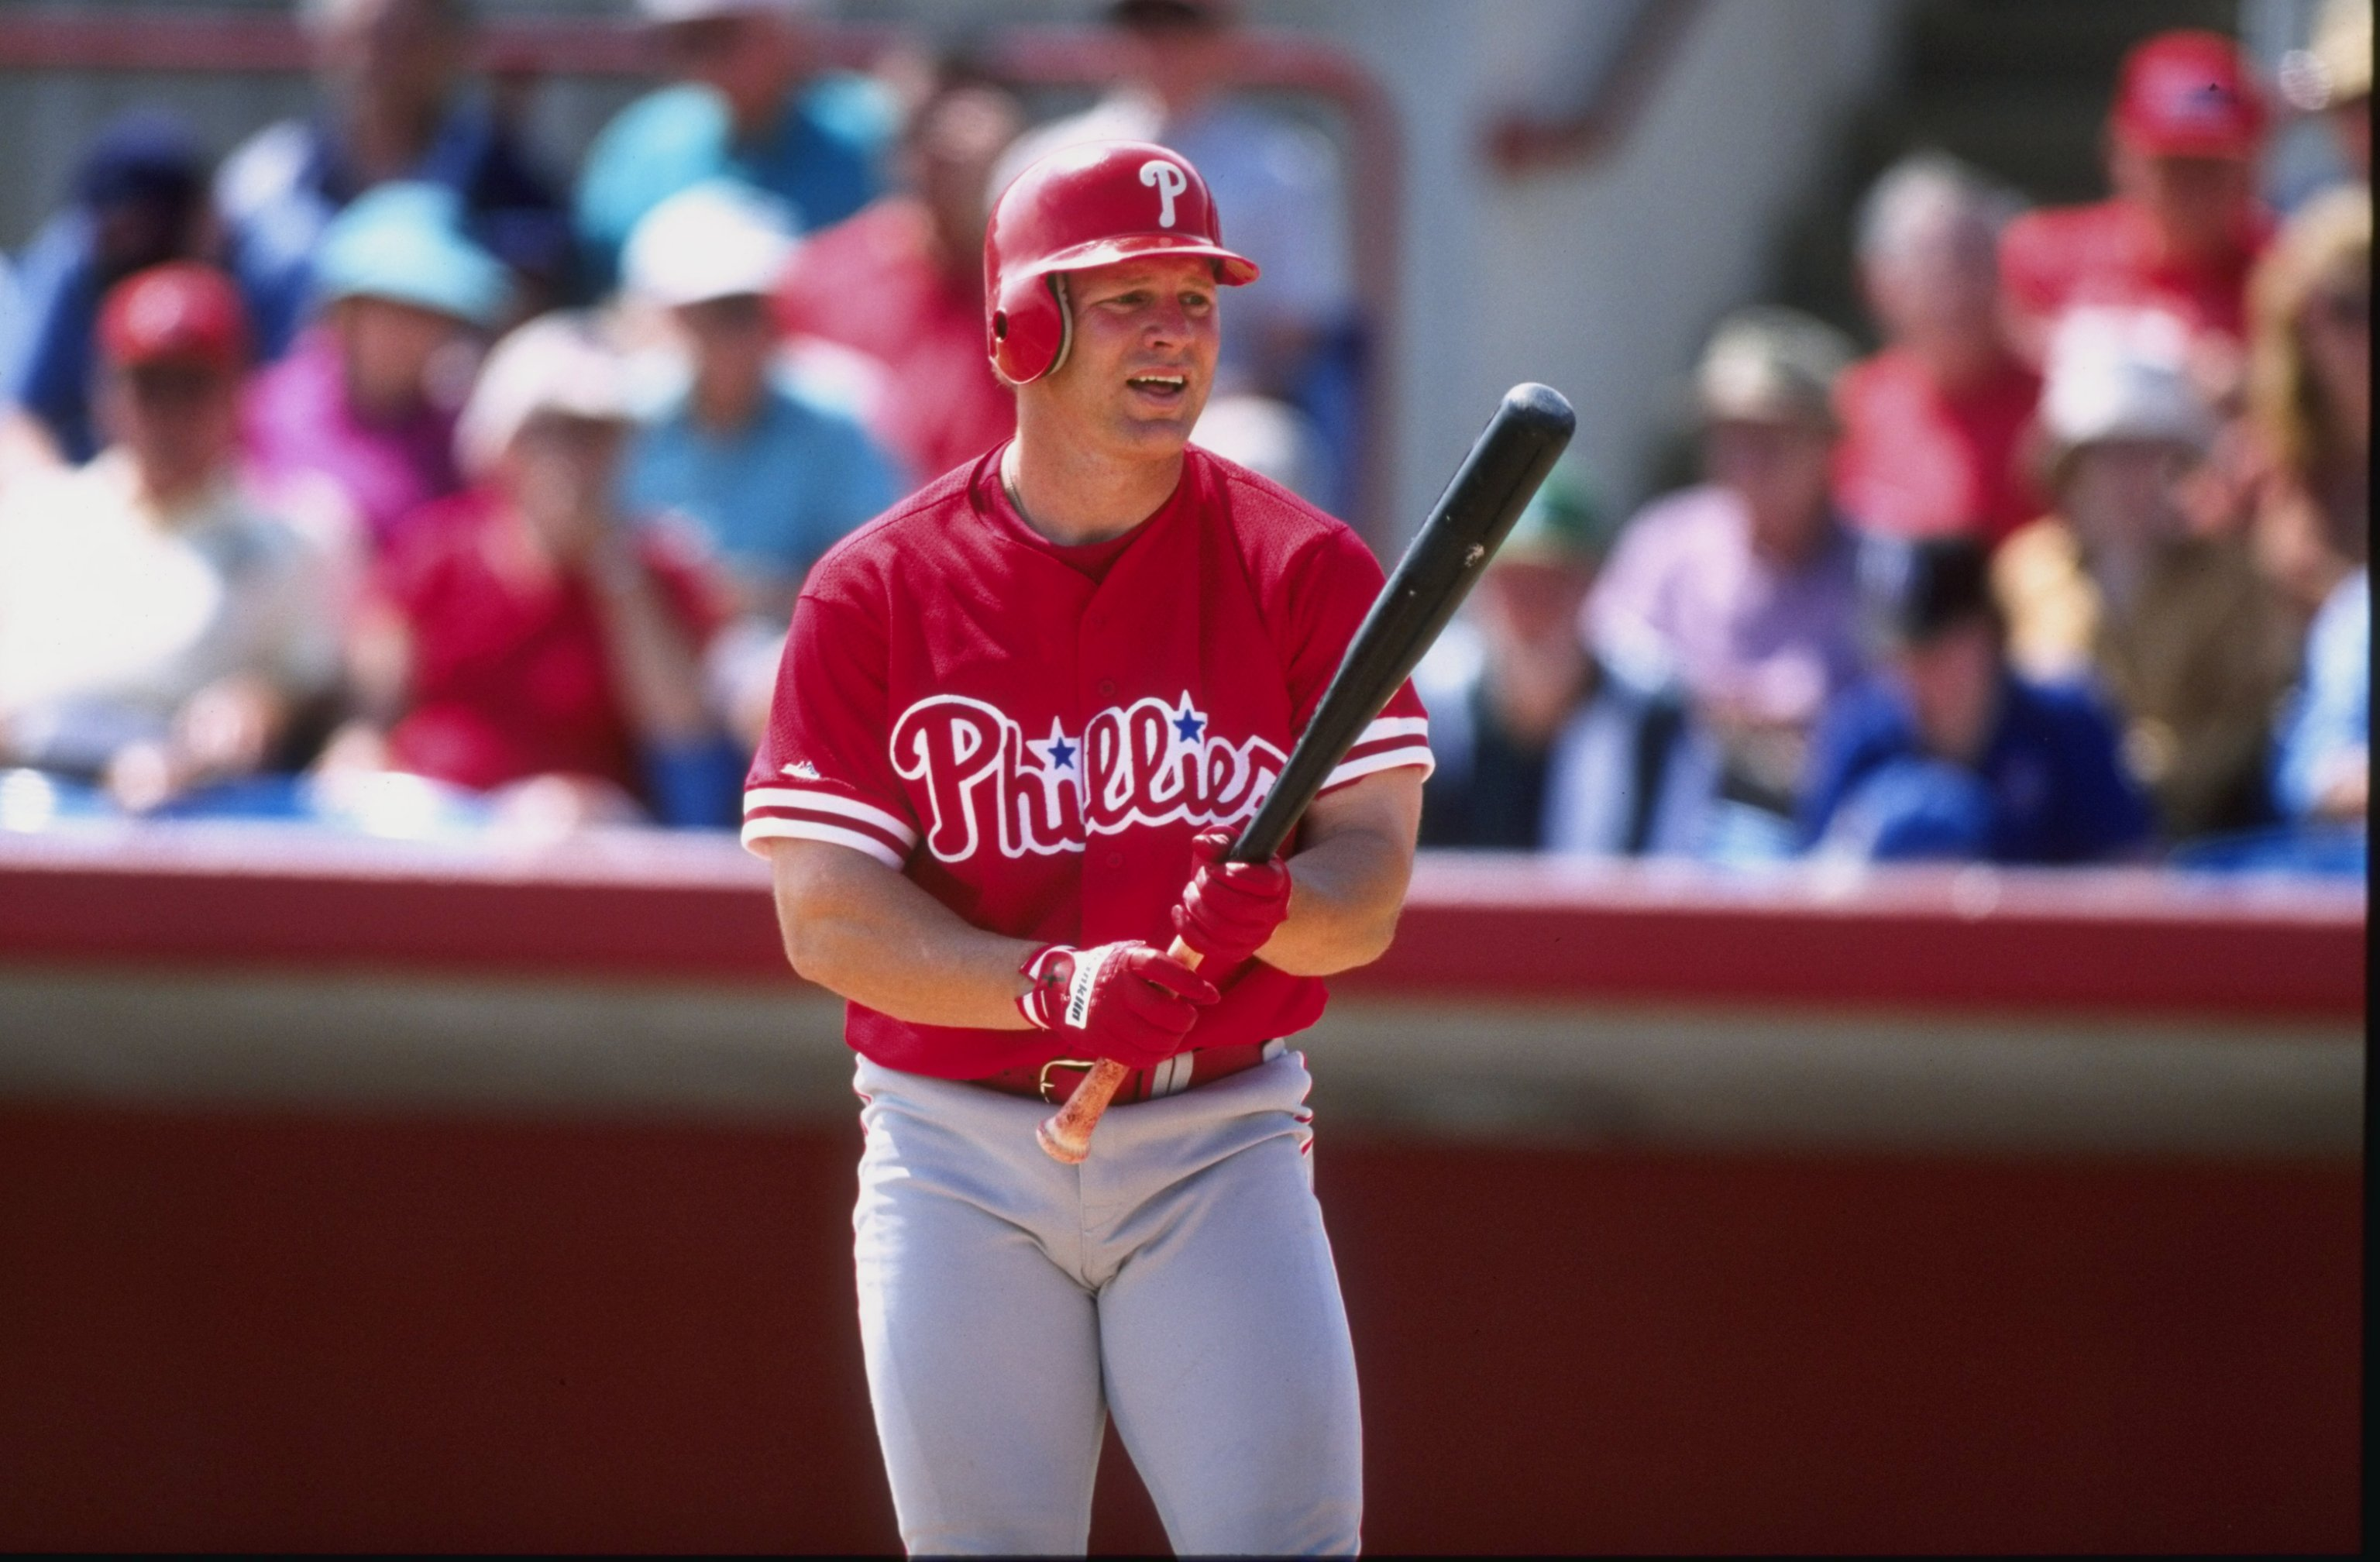 Lenny Dykstra of the Philadelphia Phillies